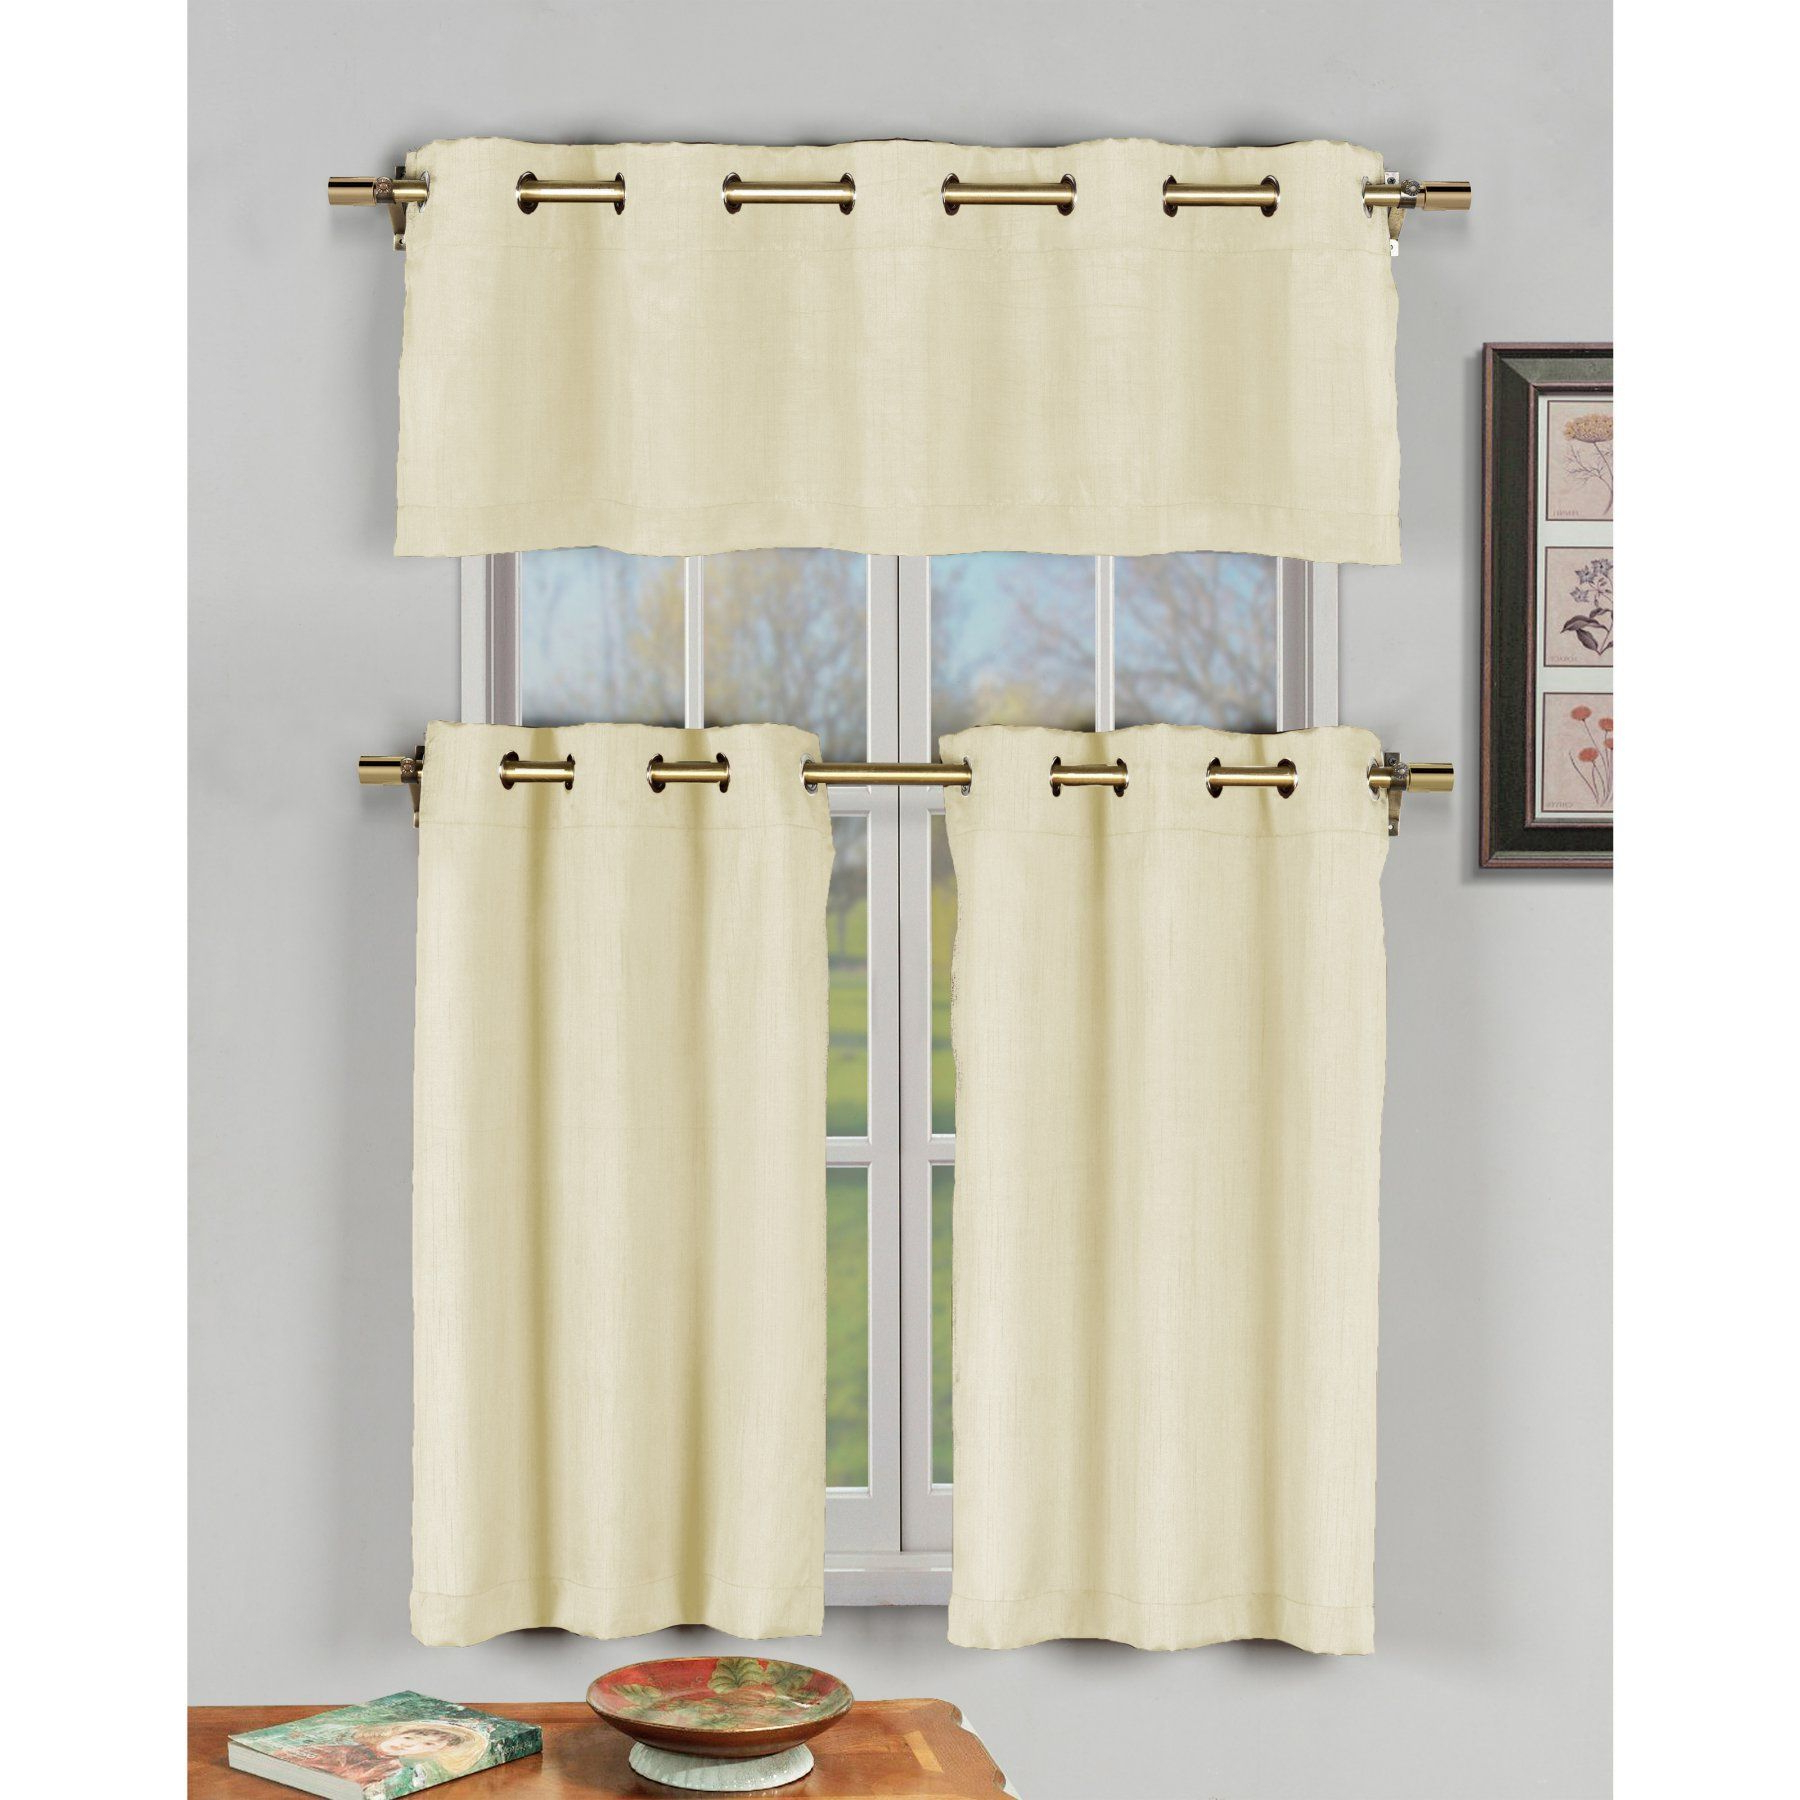 Well Liked Faux Silk 3 Piece Kitchen Curtain Sets With Regard To Duck River Agnes Faux Silk 3 Piece Grommet Kitchen Curtain (View 19 of 20)